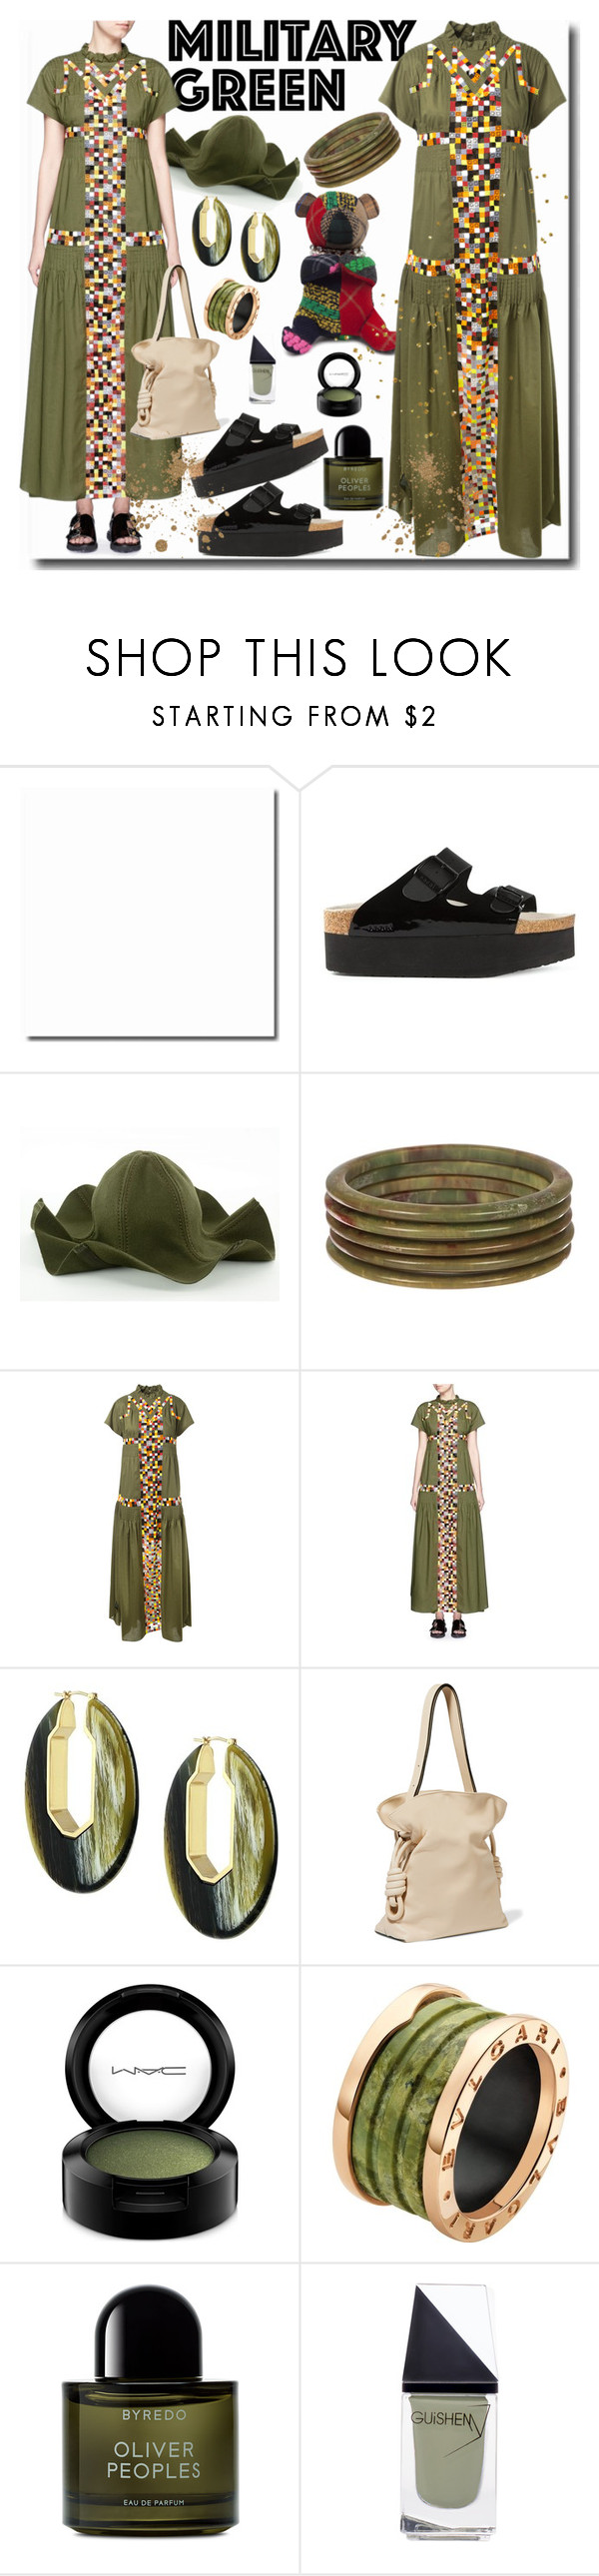 """""""Military Green"""" by emperormpf ❤ liked on Polyvore featuring mode, Sacai, Louise et Cie, Loewe, MAC Cosmetics, Bulgari, Byredo et GUiSHEM"""